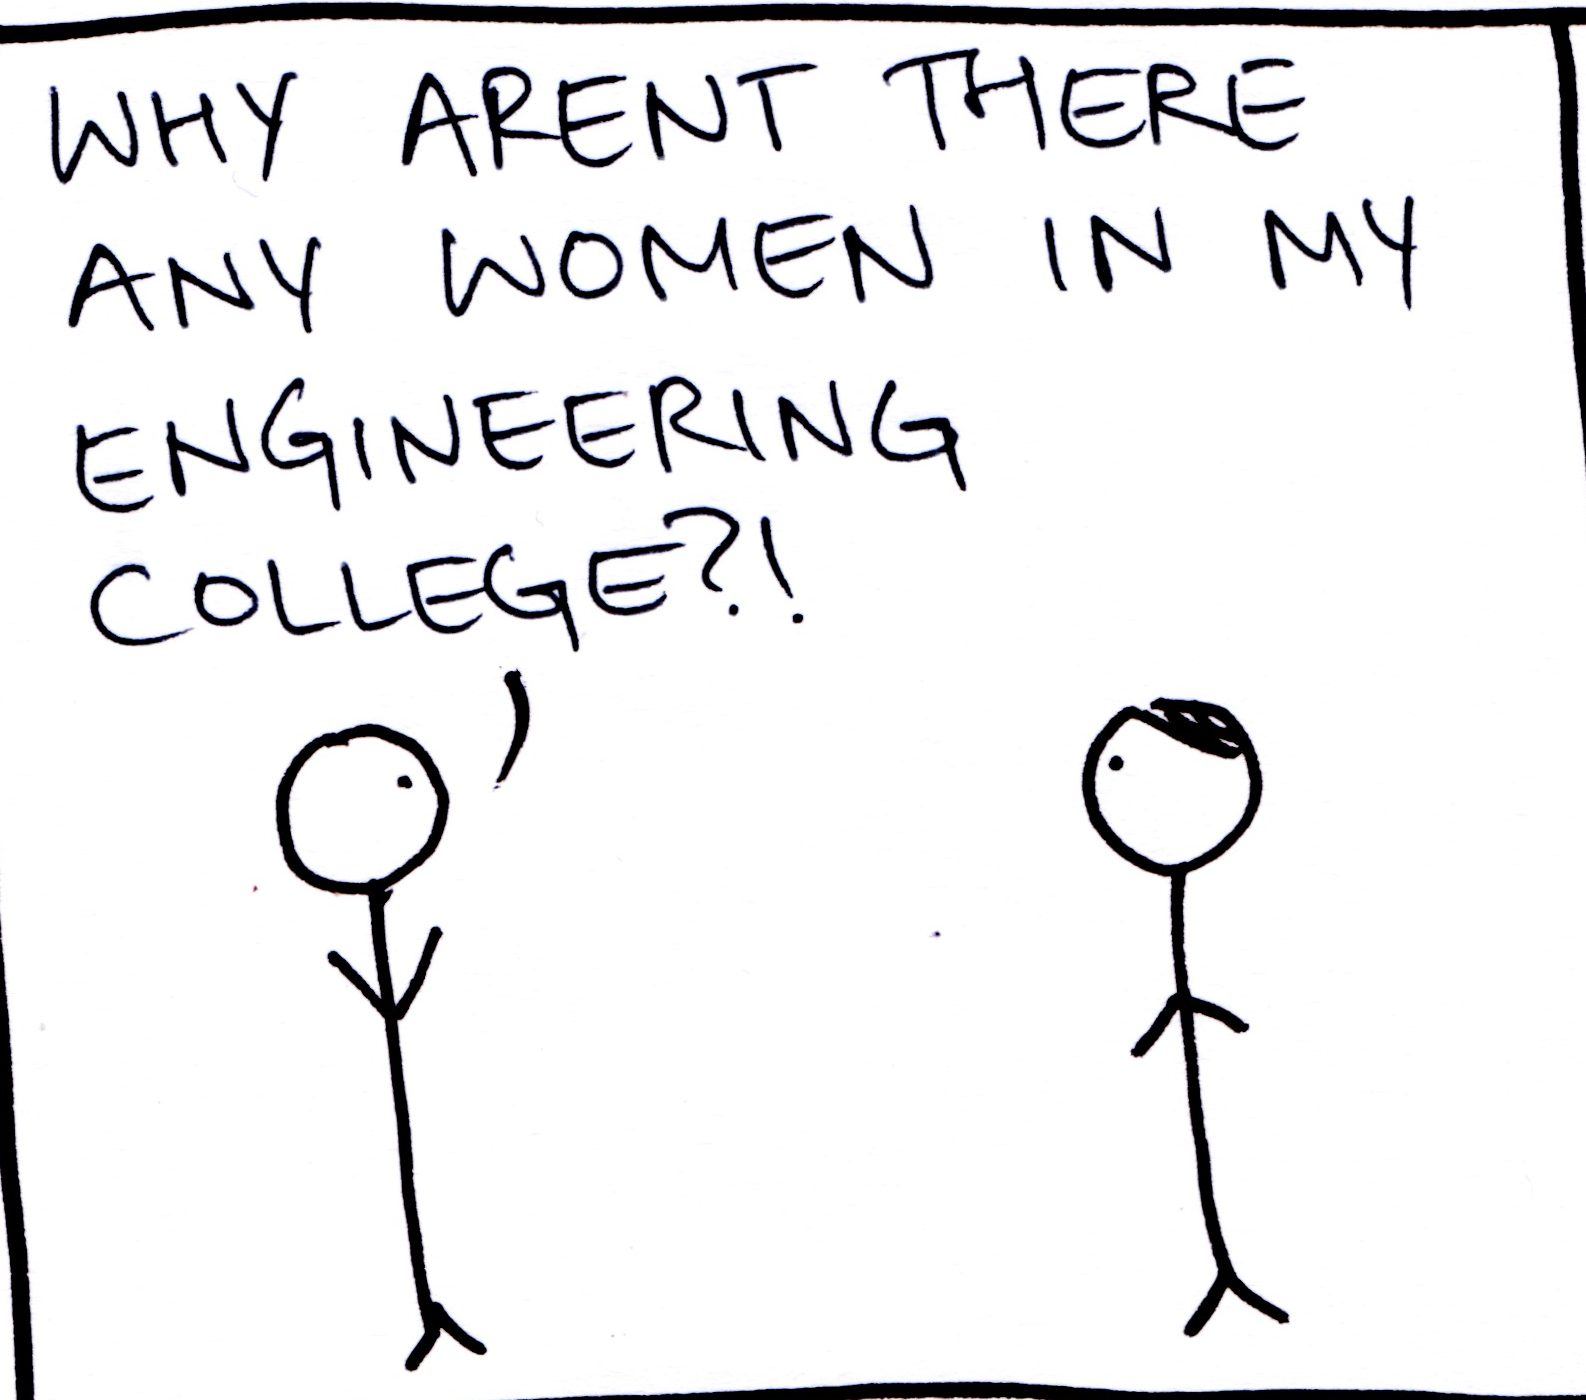 what we learnt about women in engineering colleges